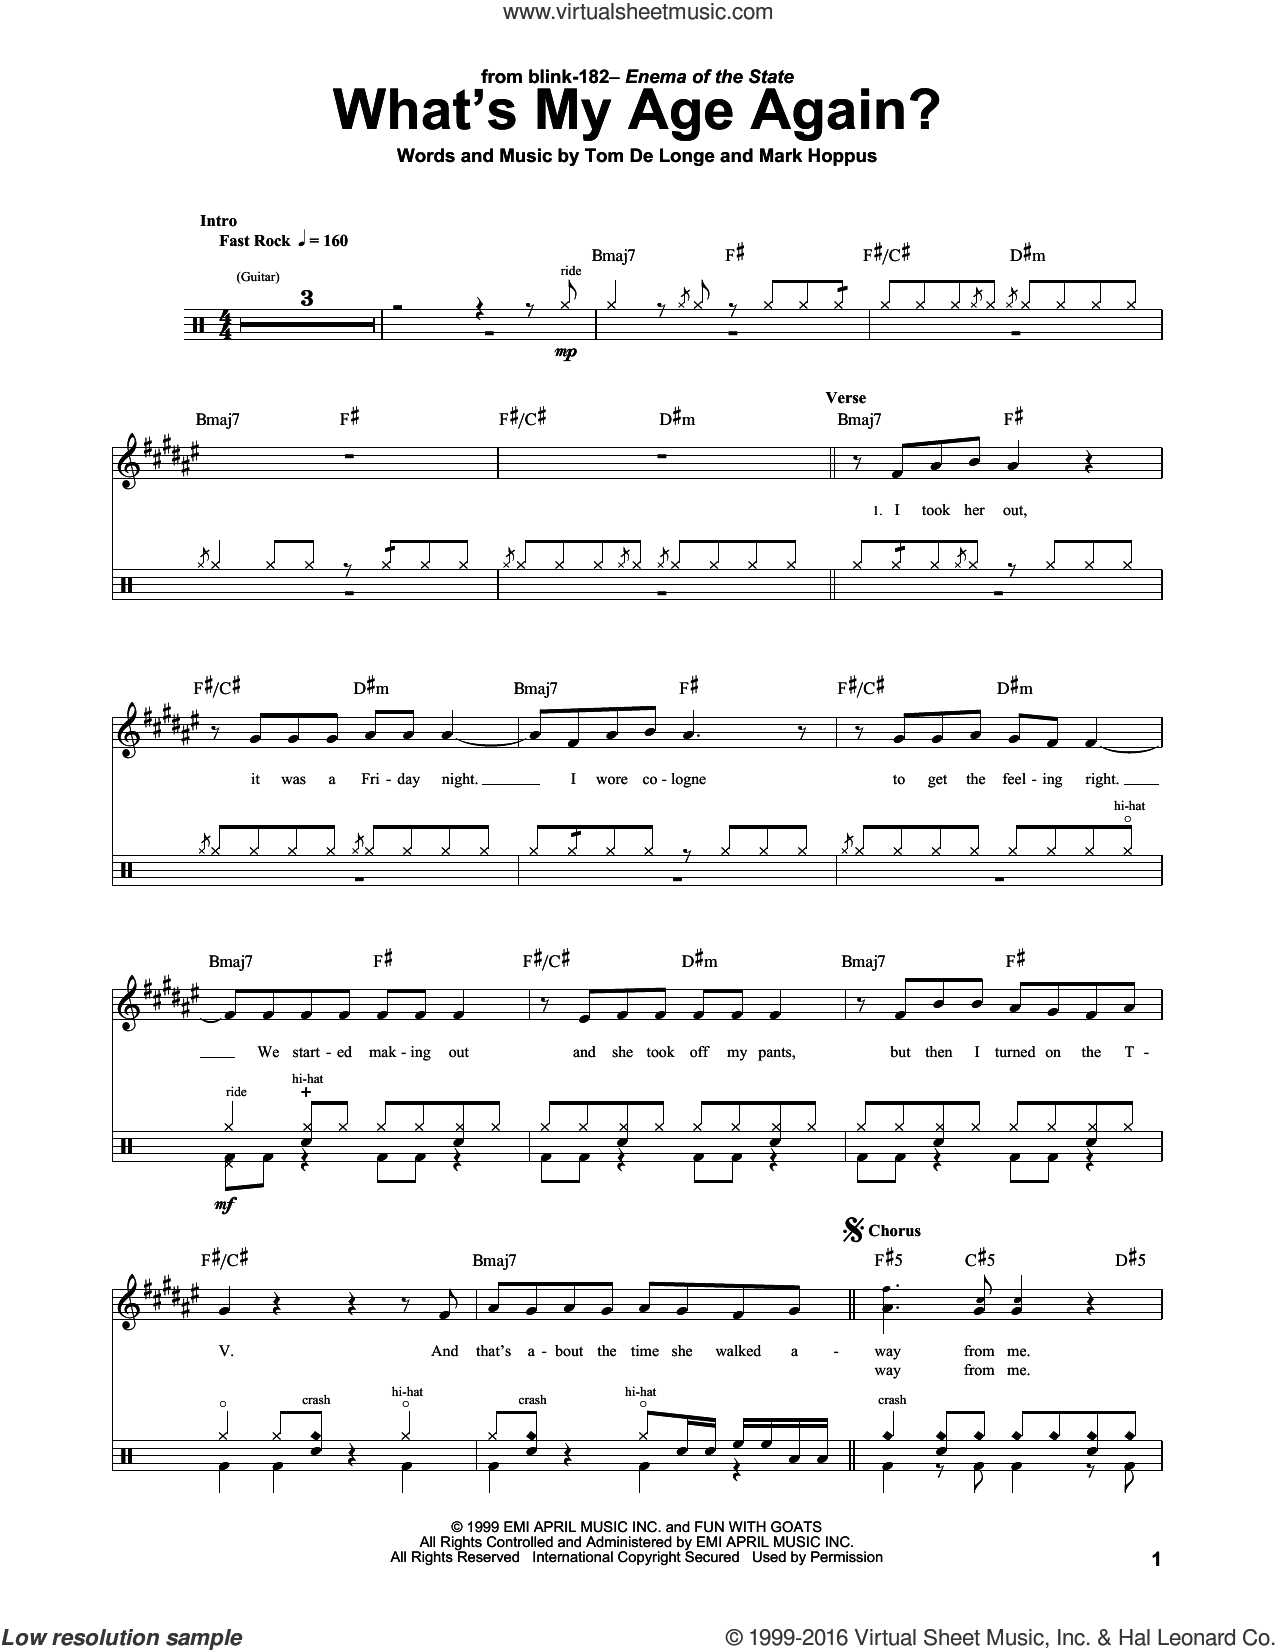 What's My Age Again? sheet music for drums by Blink 182, Mark Hoppus and Tom DeLonge, intermediate skill level